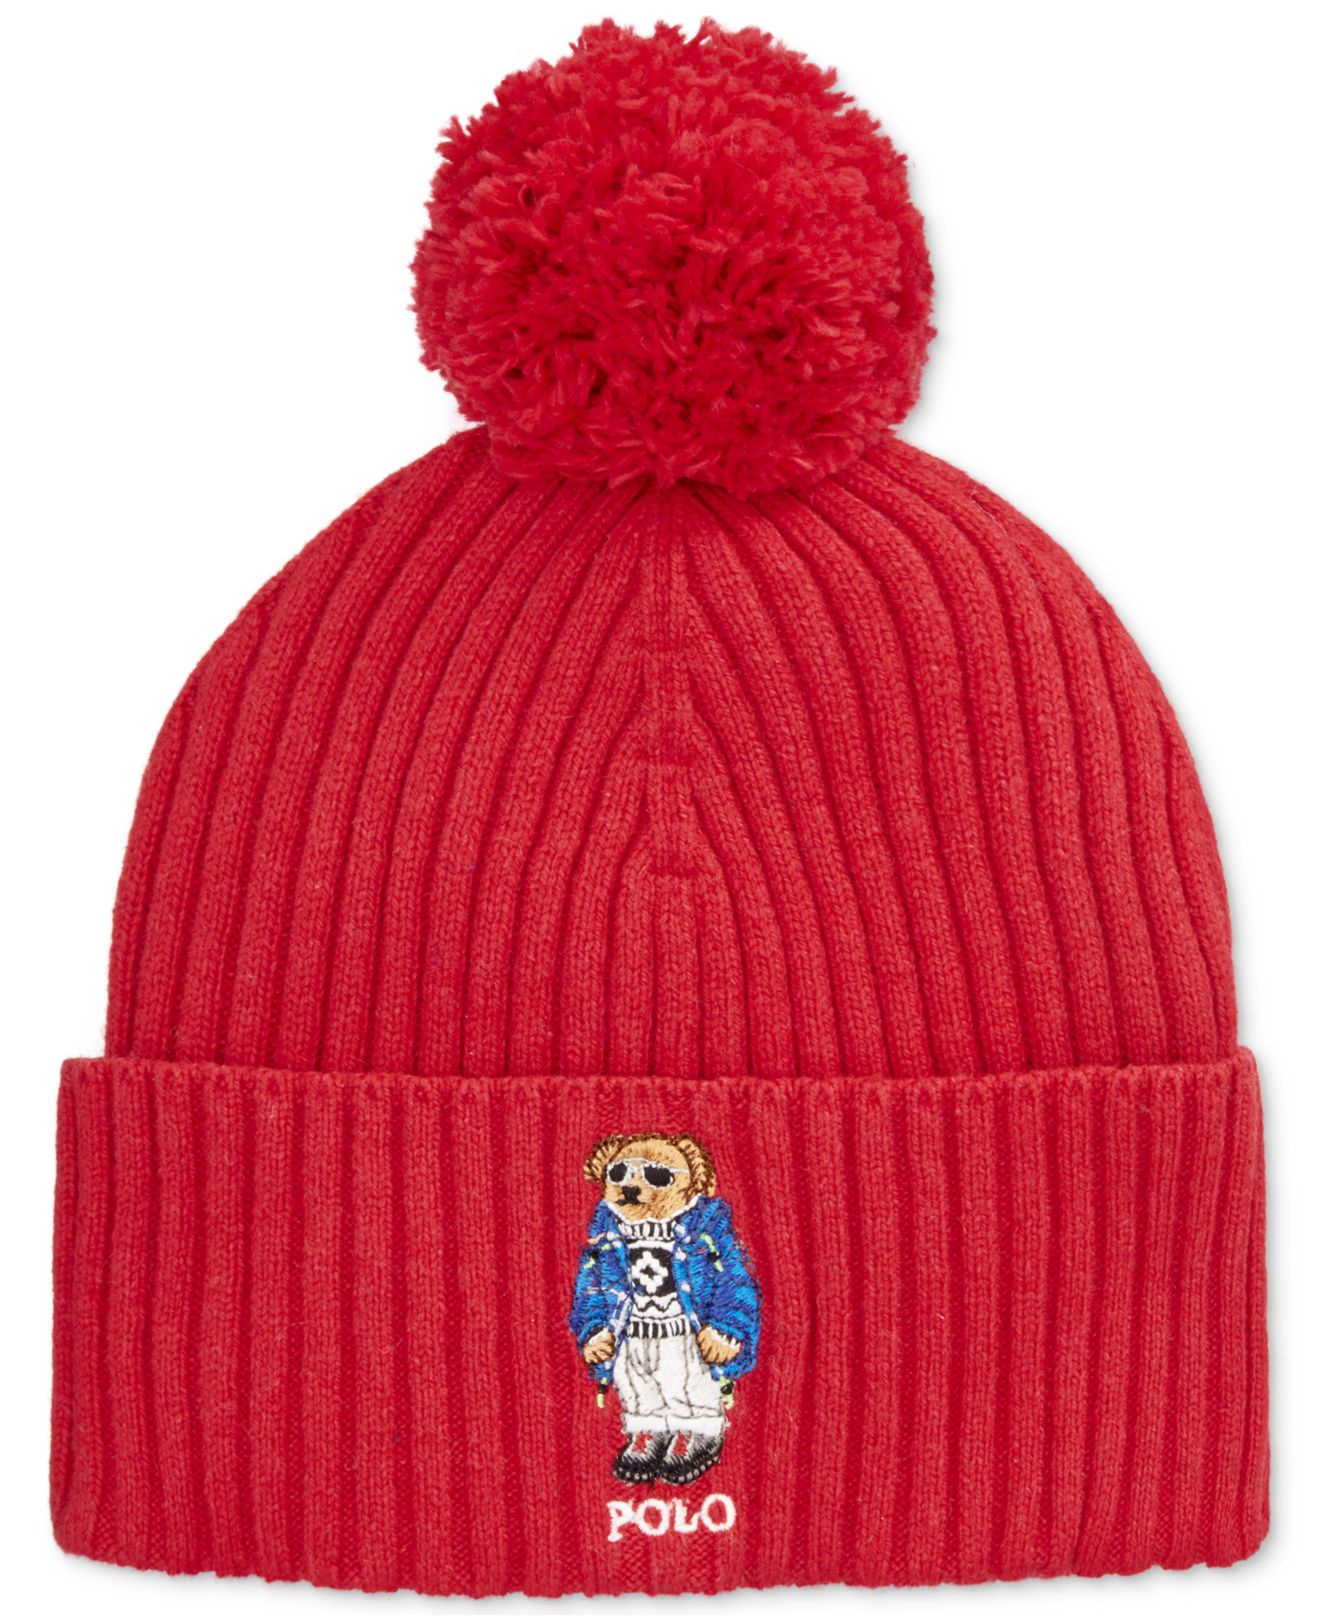 07e49c2ee2d78 Polo Ralph Lauren Ski Bear Pom-knit Cuffed Beanie in Red for Men - Lyst